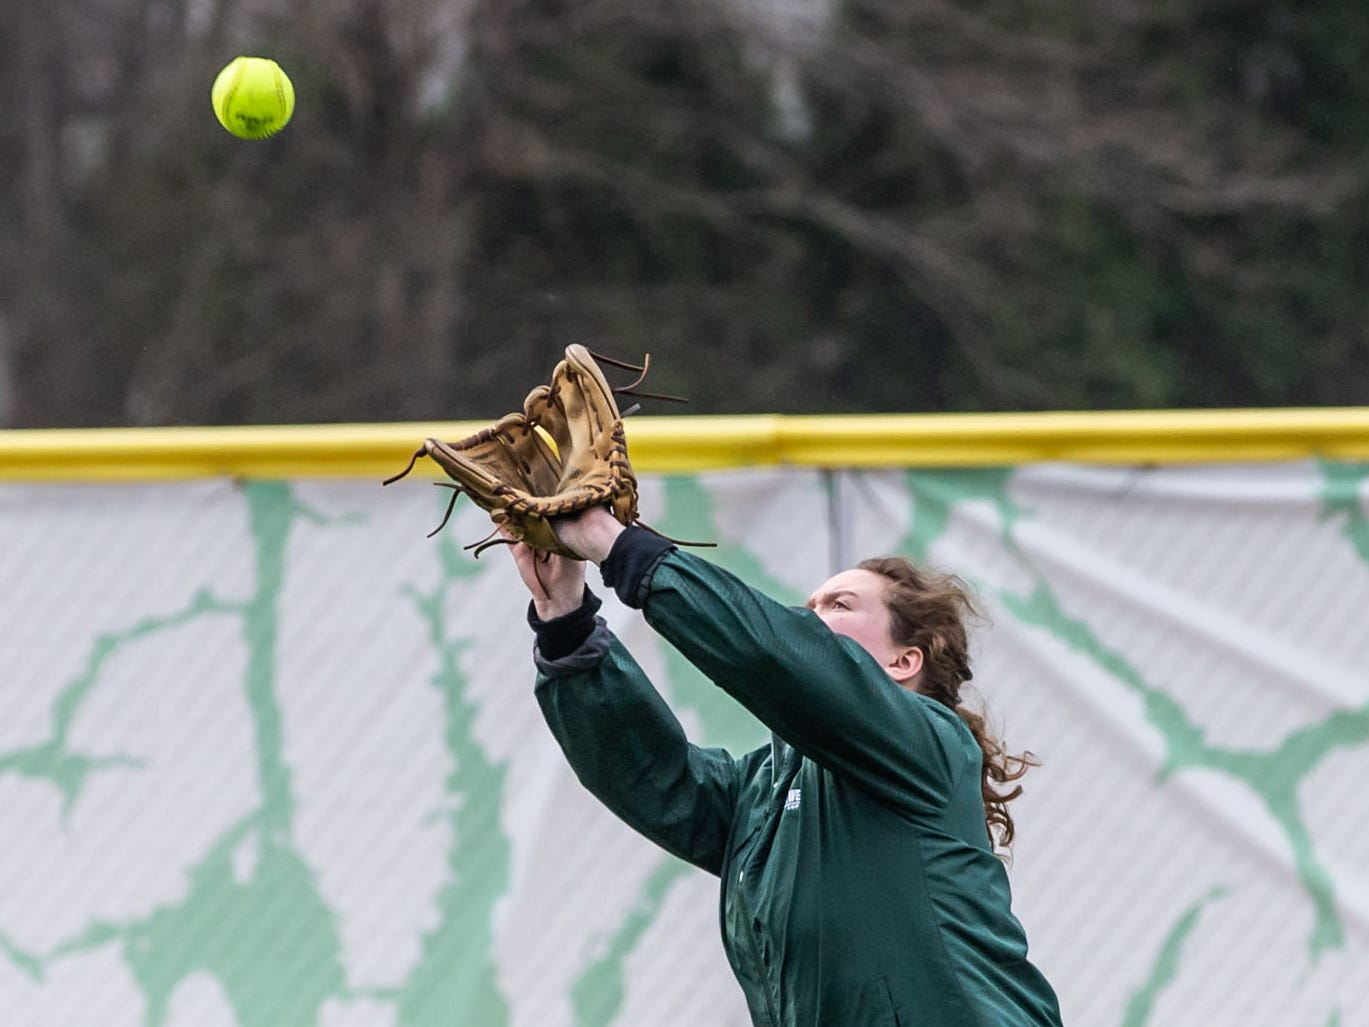 Wauwatosa West right fielder Erin Kirby pulls in a fly ball during the game at home against DSHA on Wednesday, April 17, 2019.